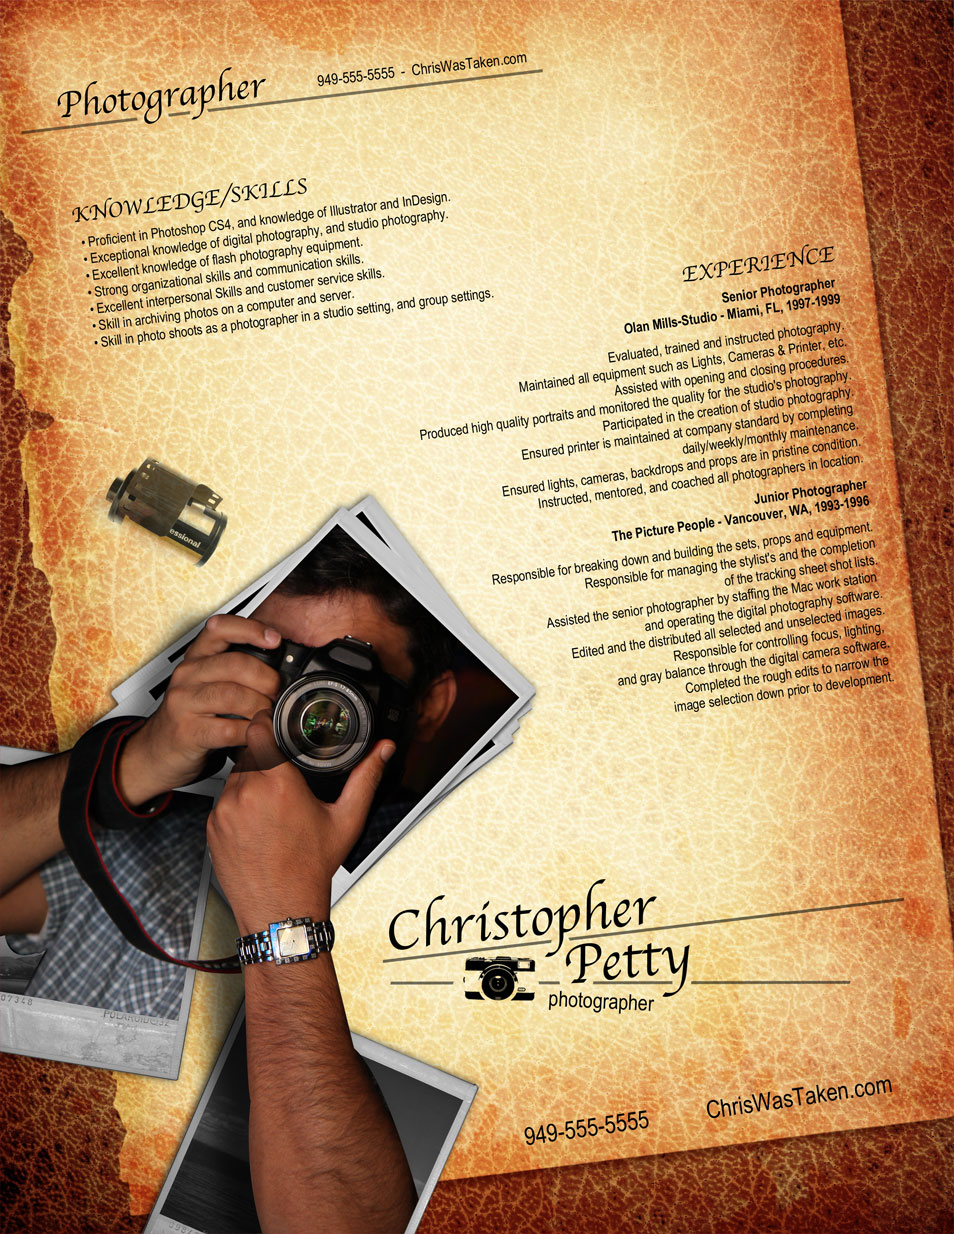 Opposenewapstandardsus  Mesmerizing  Creative Cvresume Design Inspiration With Licious Resume Photographer With Amusing Sales Associate Job Description Resume Also Resumate In Addition Resume Builder Template And Lying On Resume As Well As Make A Free Resume Additionally Real Estate Resume From Cssauthorcom With Opposenewapstandardsus  Licious  Creative Cvresume Design Inspiration With Amusing Resume Photographer And Mesmerizing Sales Associate Job Description Resume Also Resumate In Addition Resume Builder Template From Cssauthorcom